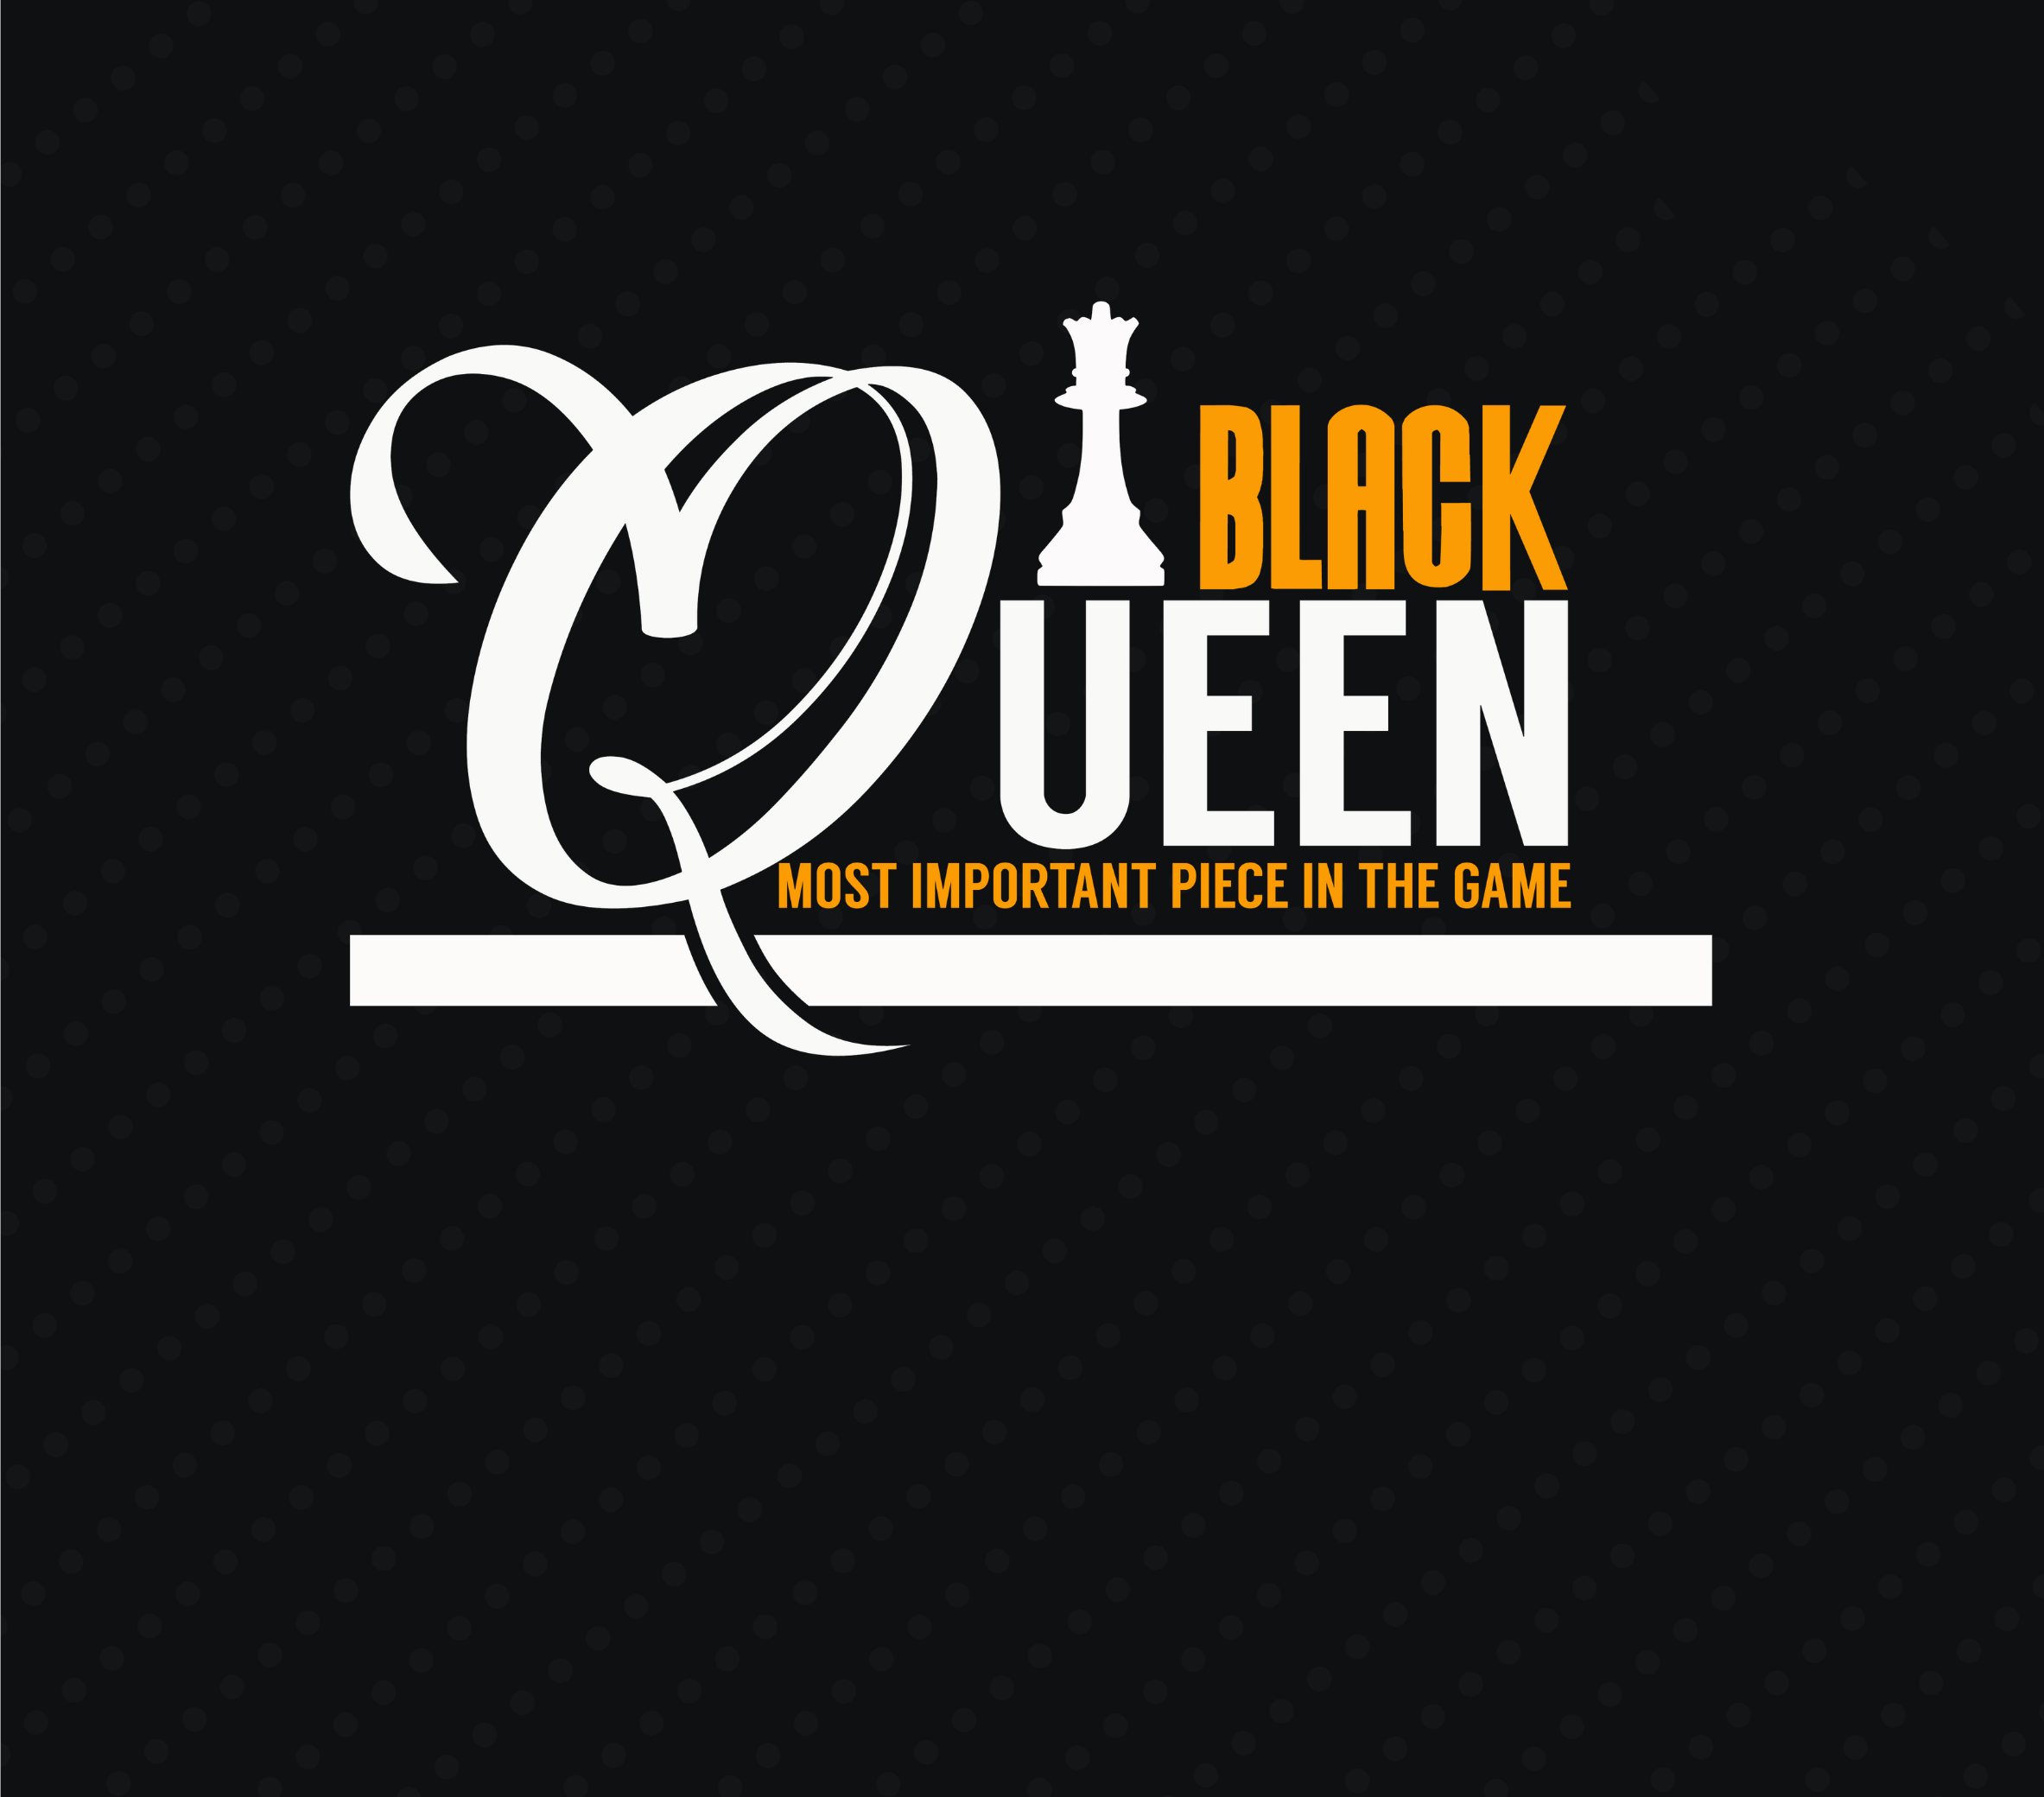 Black Queen Most Important Piece In The Game Game Of Chess Etsy Clip Art Digital Graphics Black